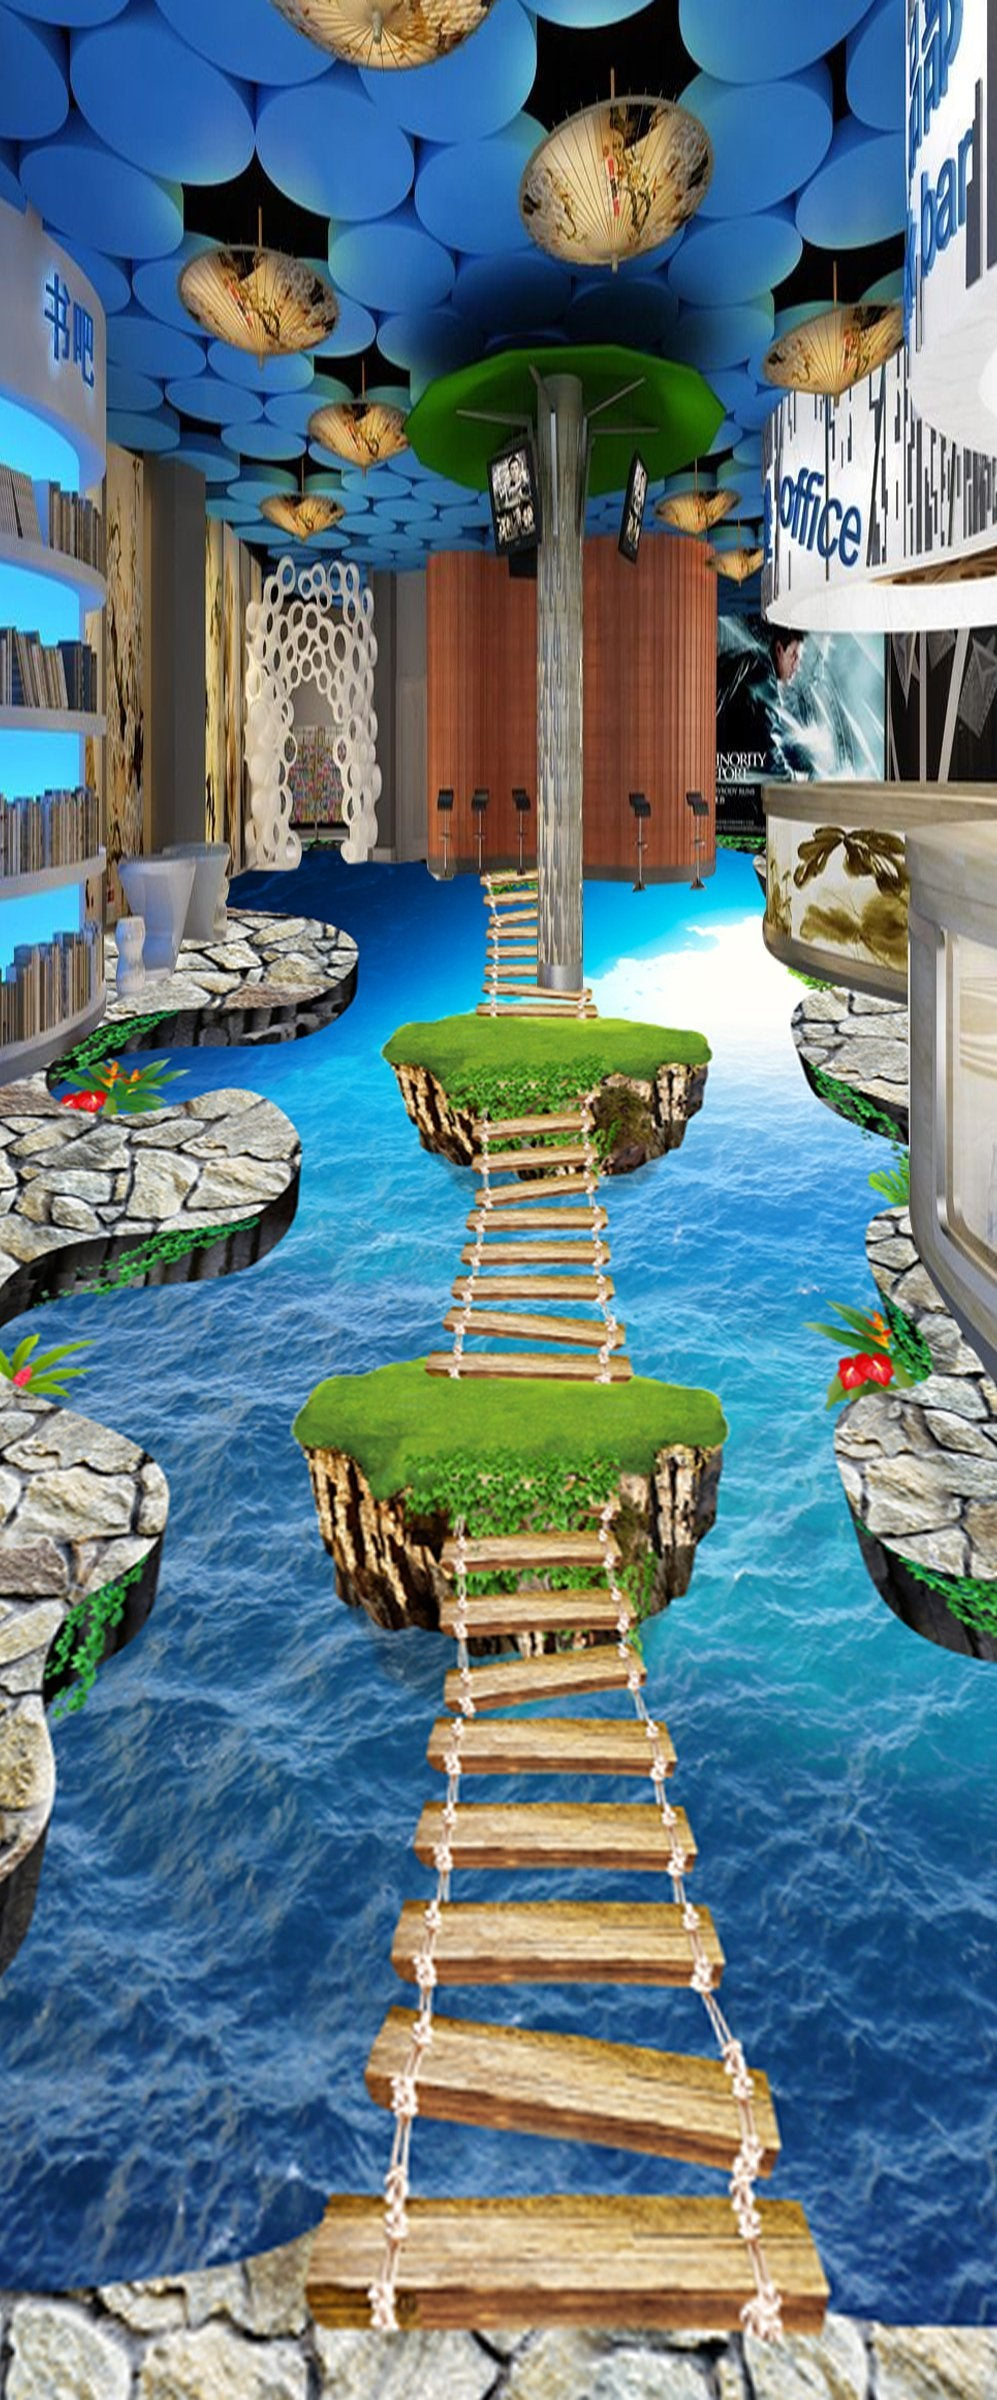 3D Wooden Bridge WG067 Floor Mural